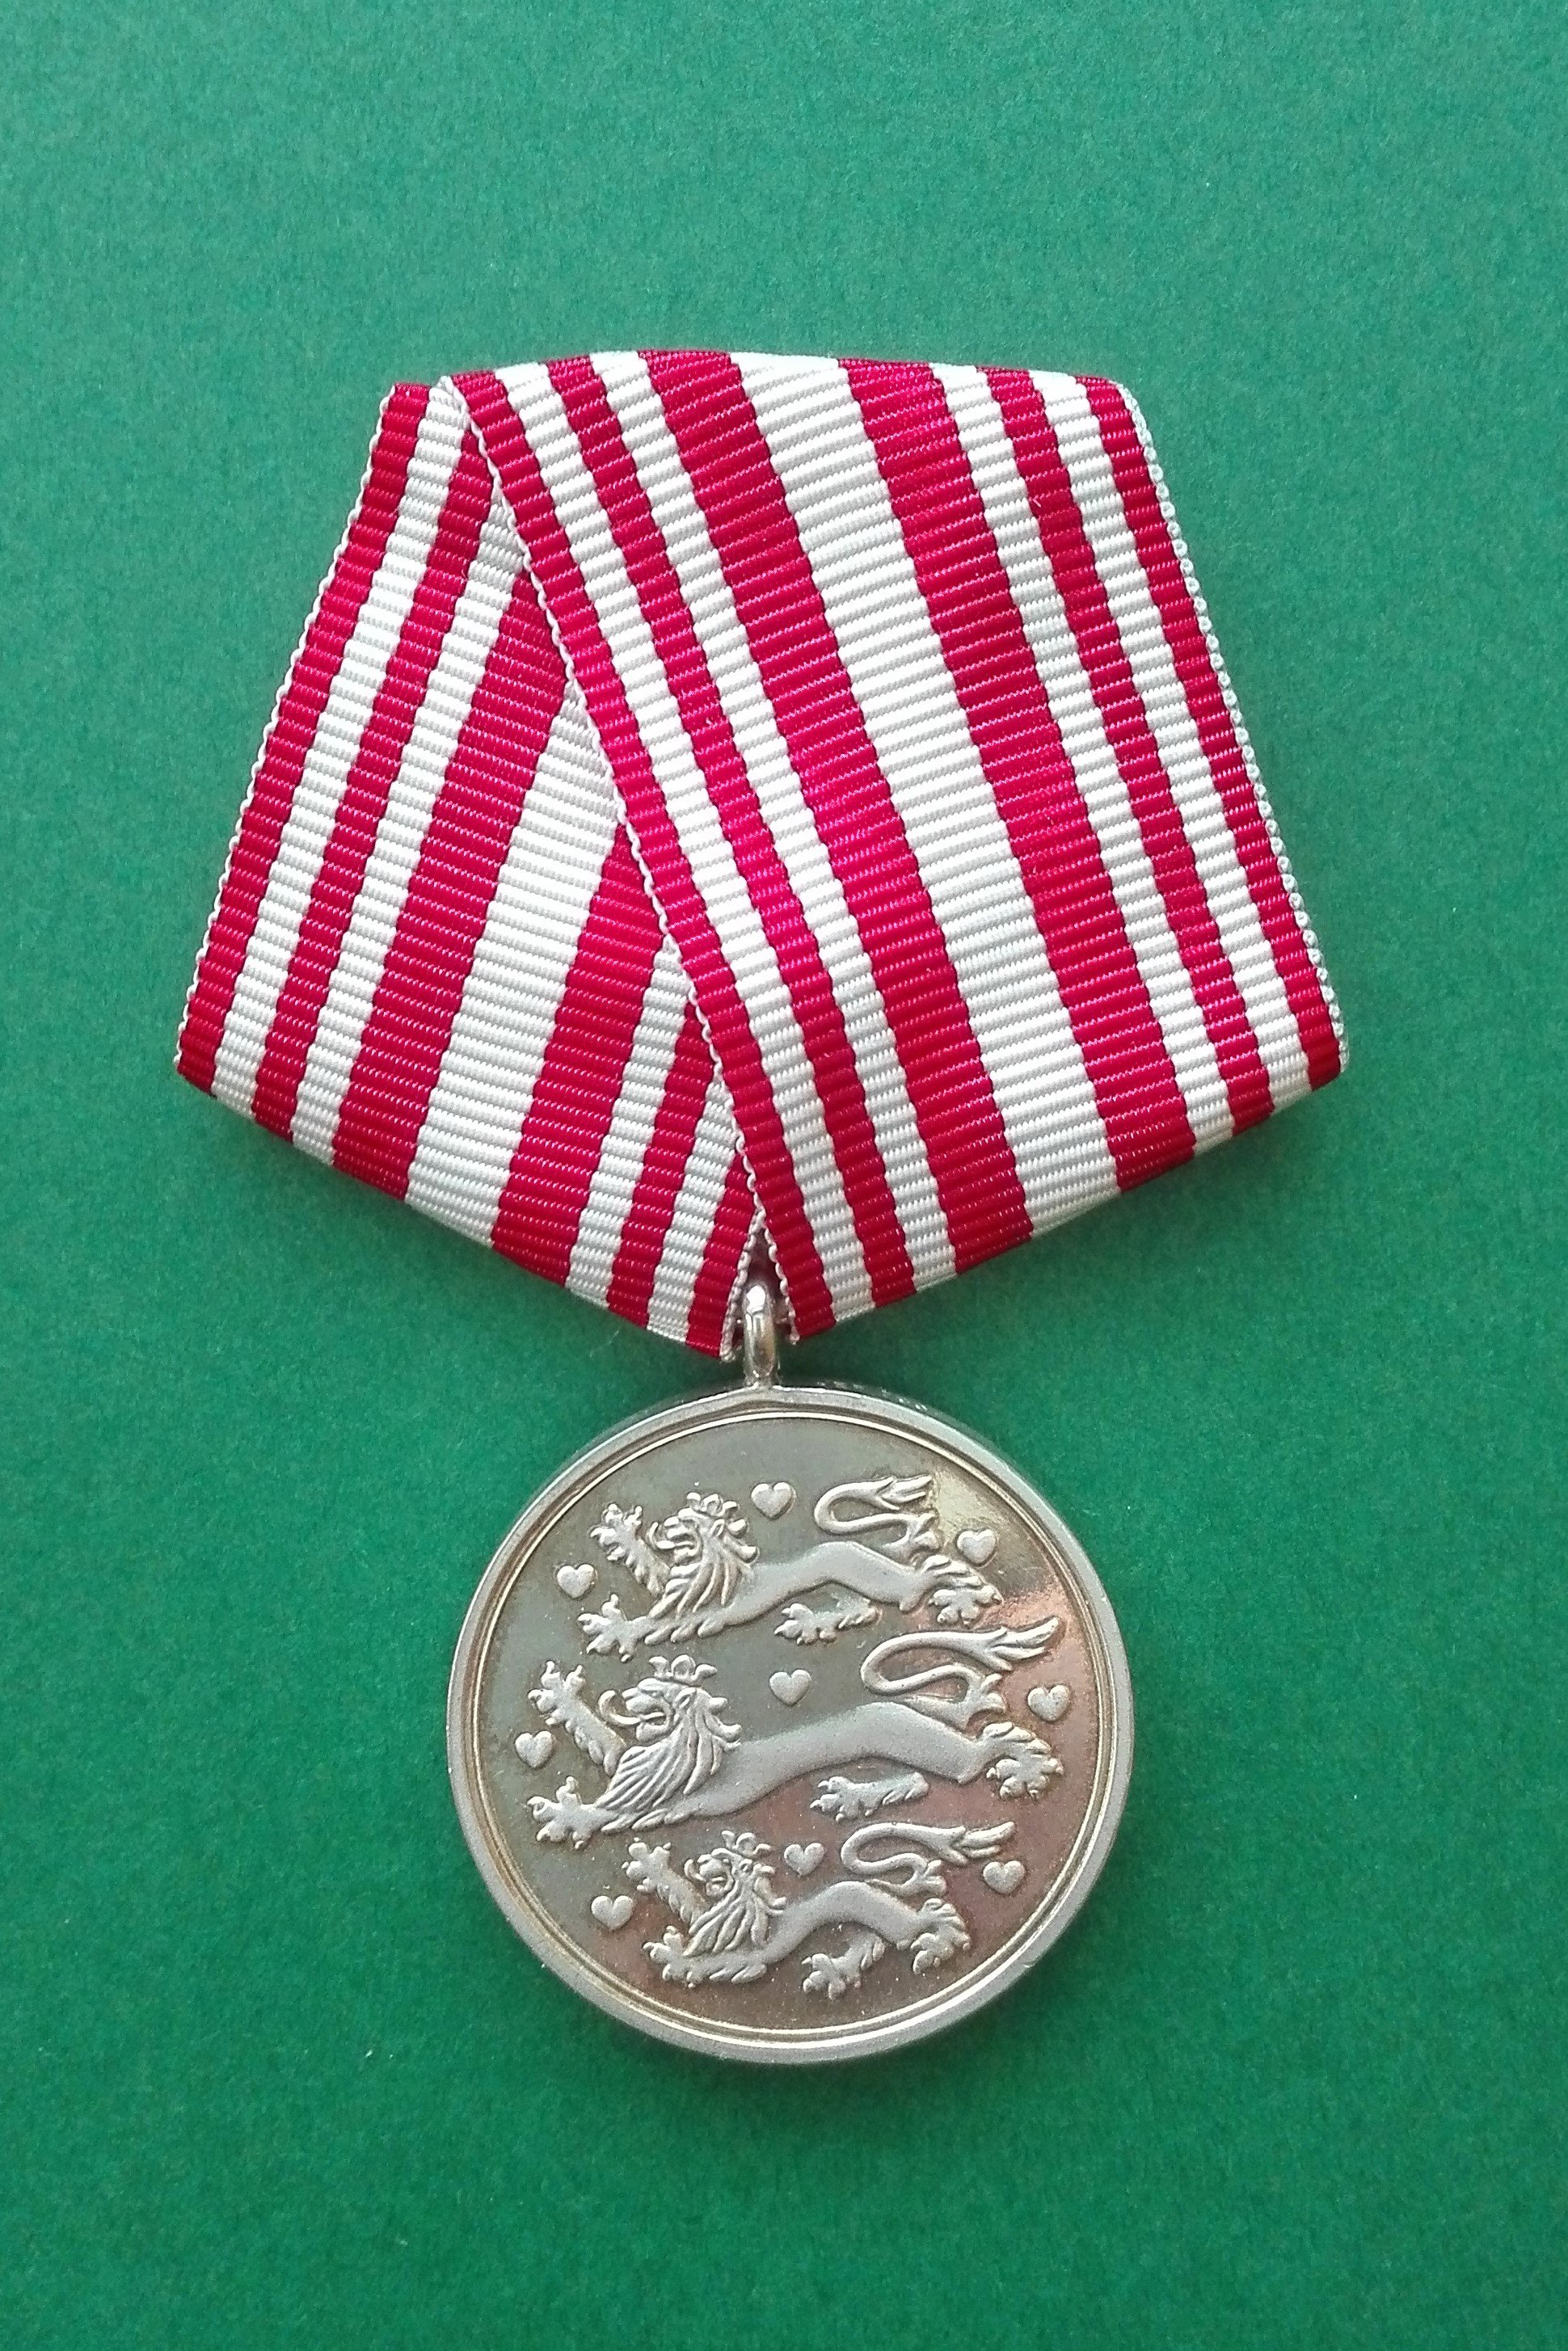 Forsvarets Medalje for International Tjeneste - Afghanistan